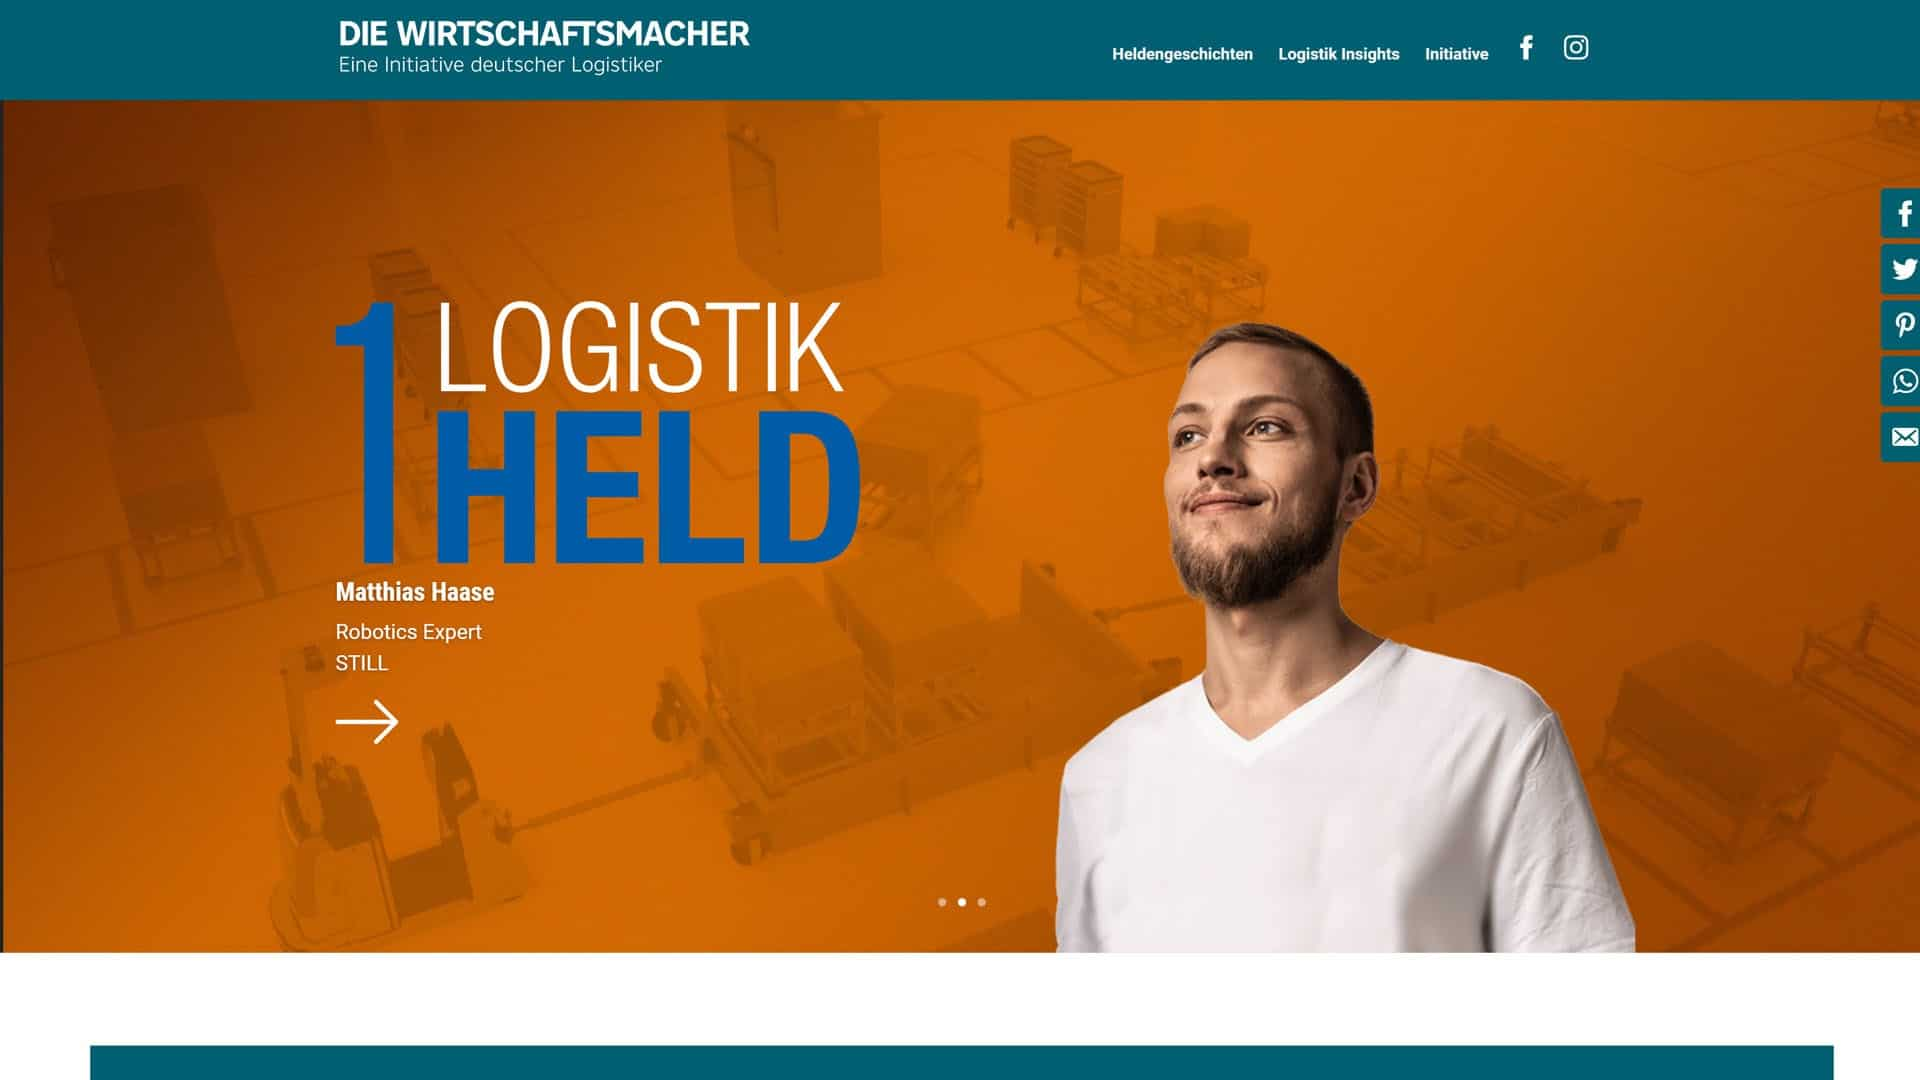 Teaser Case HR Kampagne Bundesverband Logistik